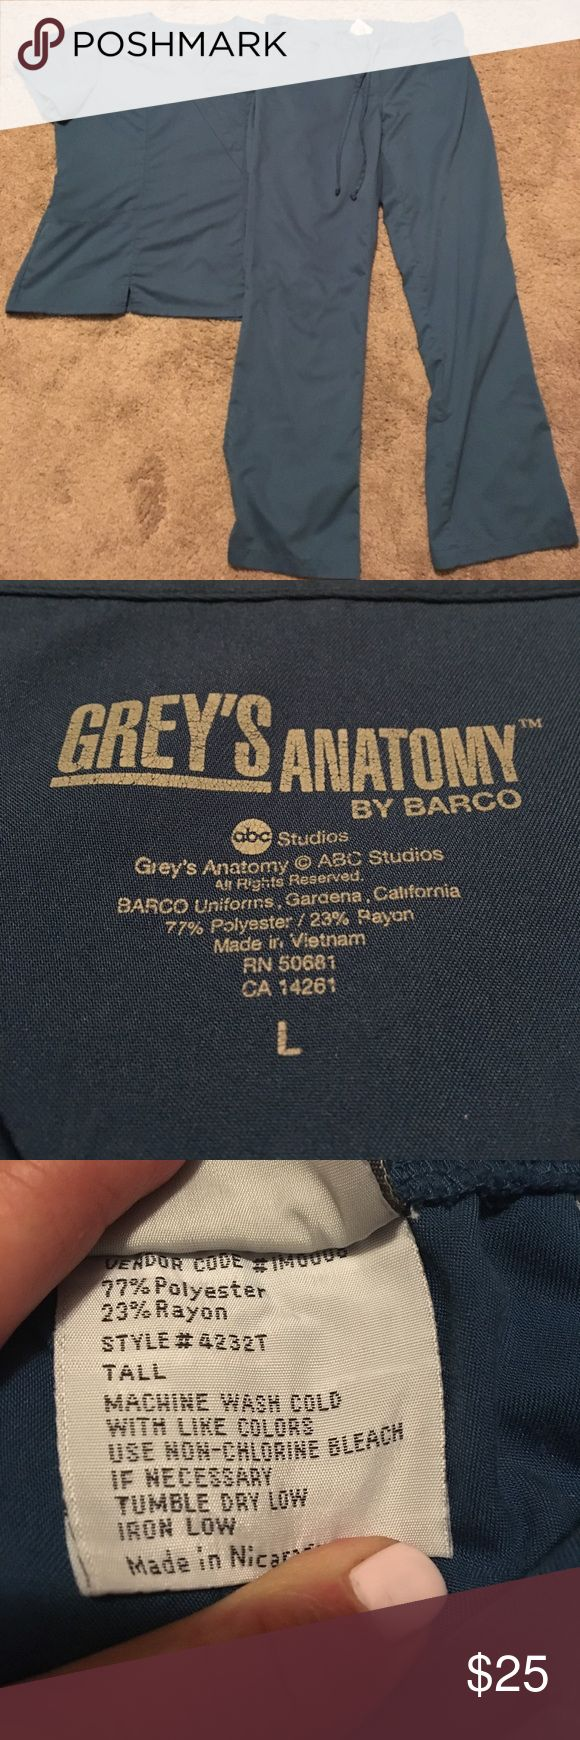 Grey's Anatomy size large tall scrub set Grey's Anatomy size large two piece scrub set top is size large pants are size large tall see all of our other scrubs would love to bundle and save you money grey's Anatomy Pants